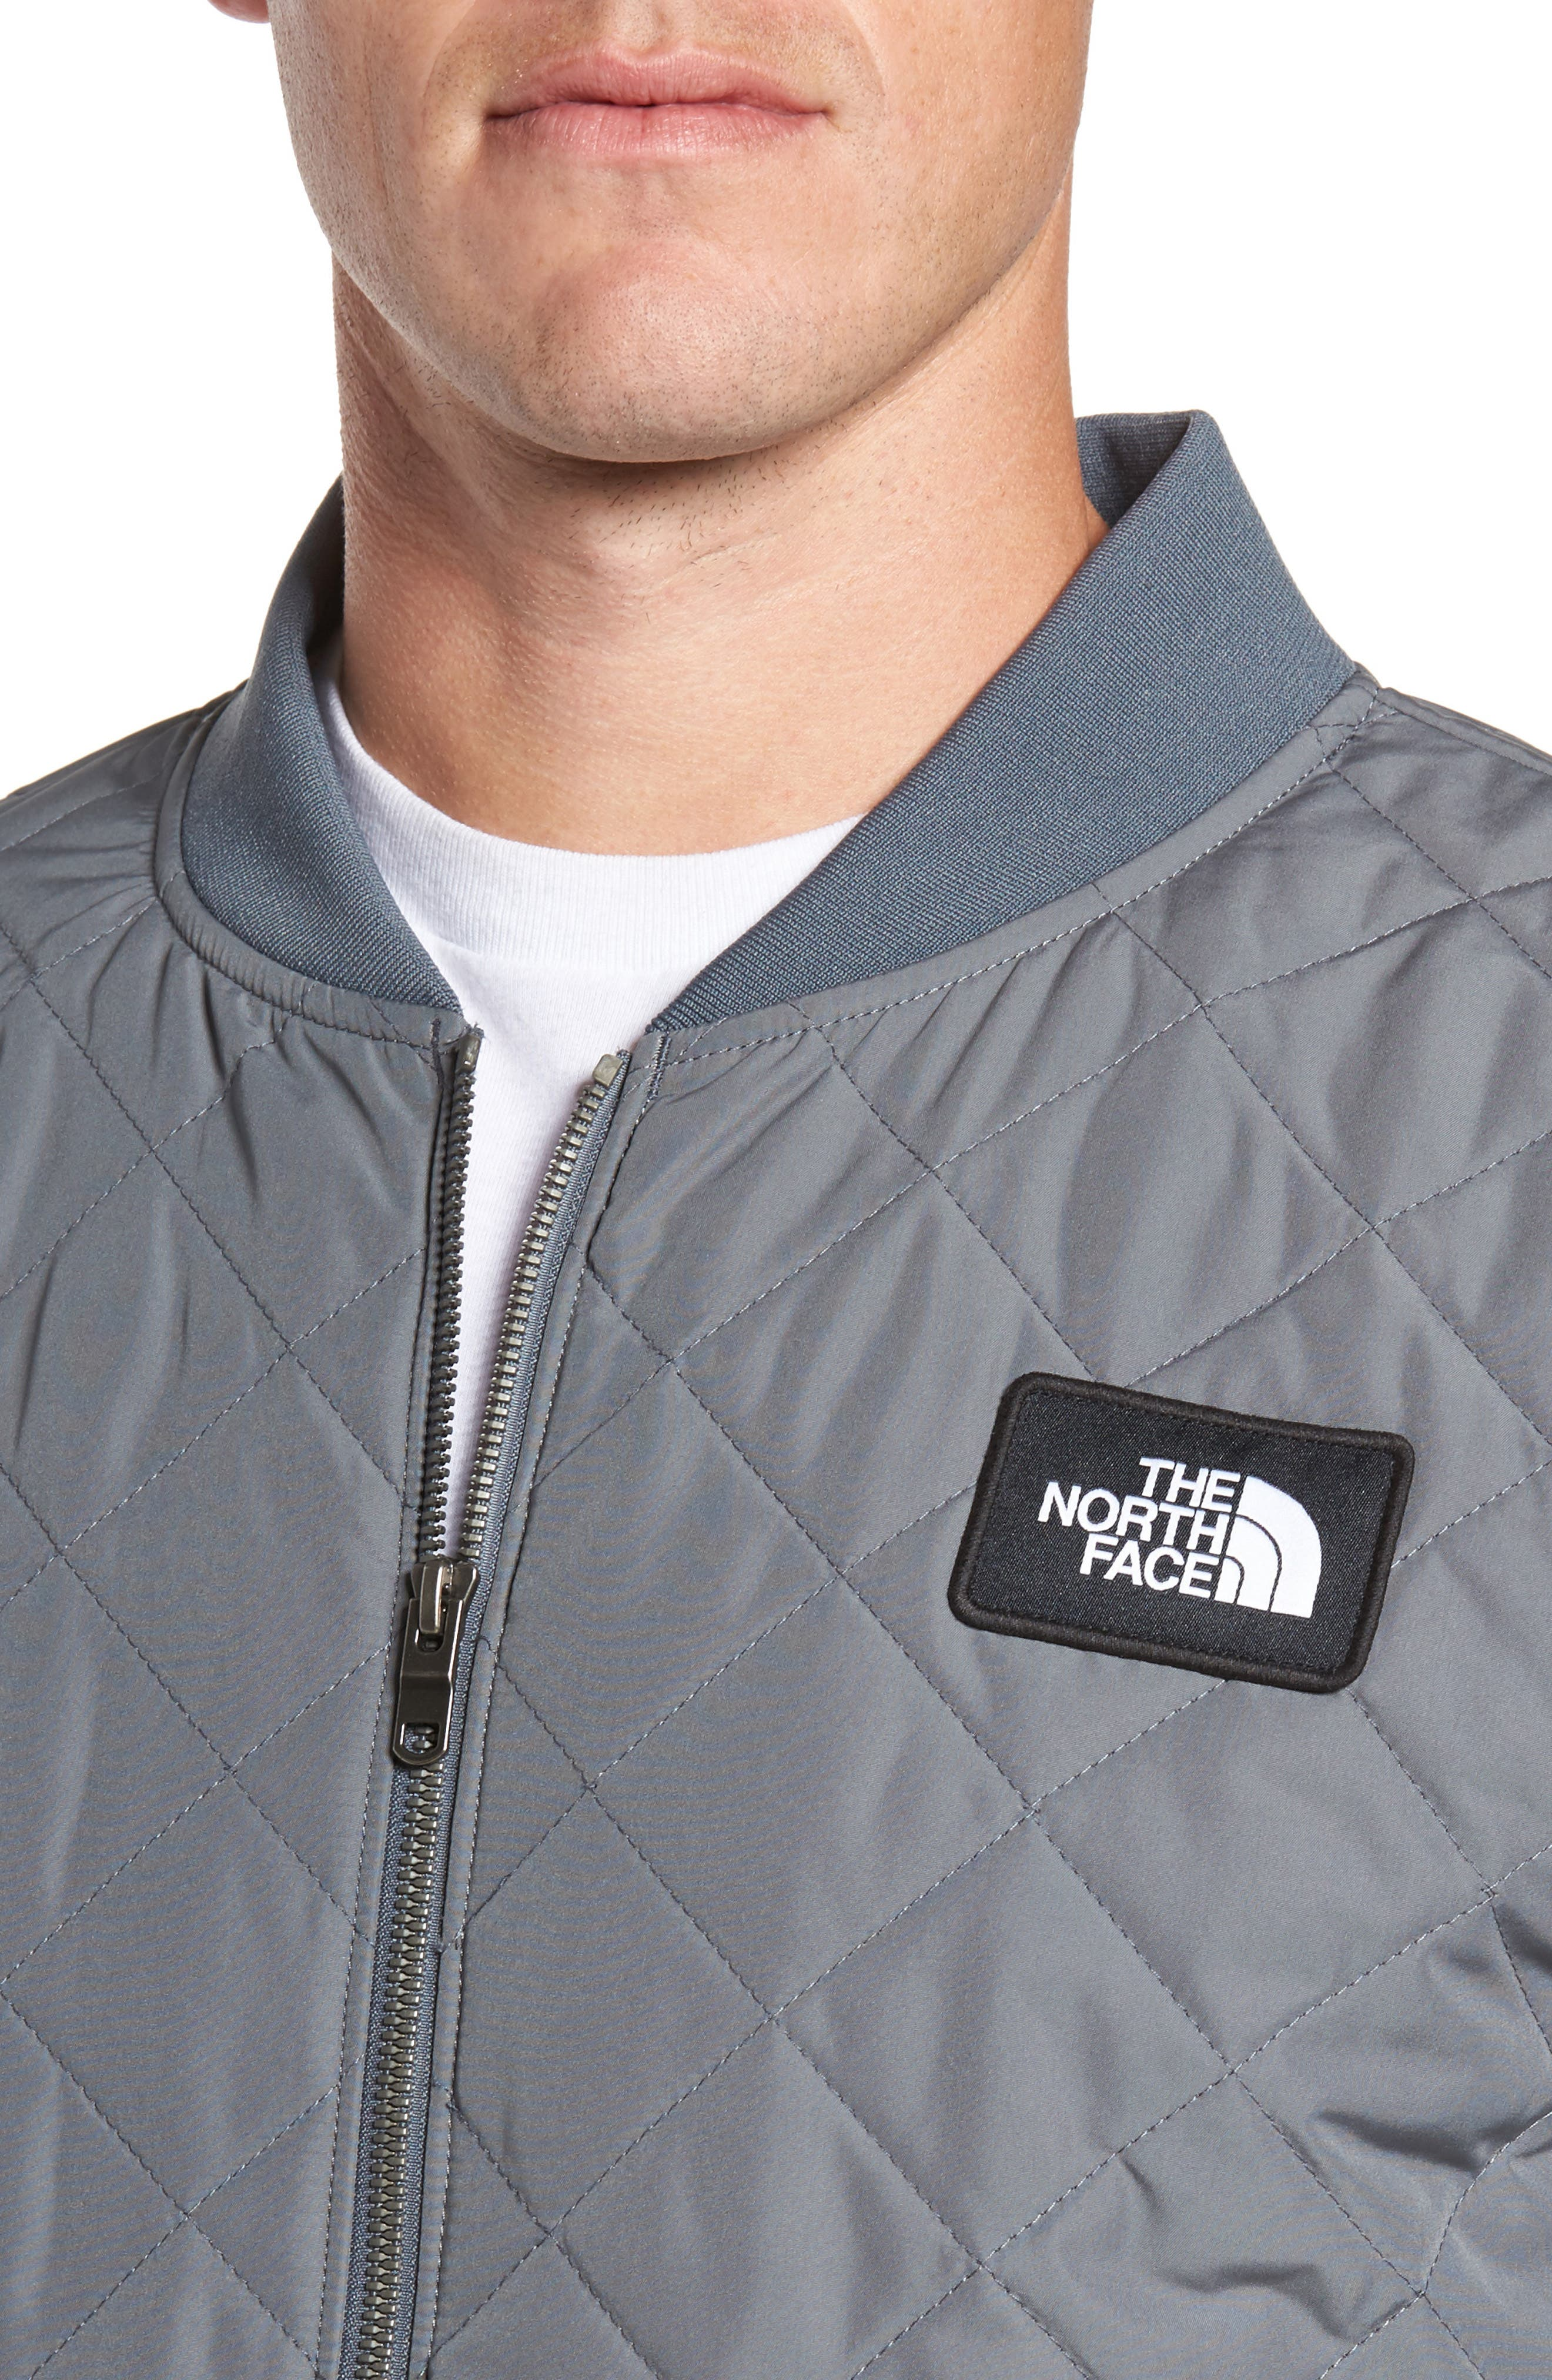 Distributor Quilted Bomber Jacket,                             Alternate thumbnail 4, color,                             Grey